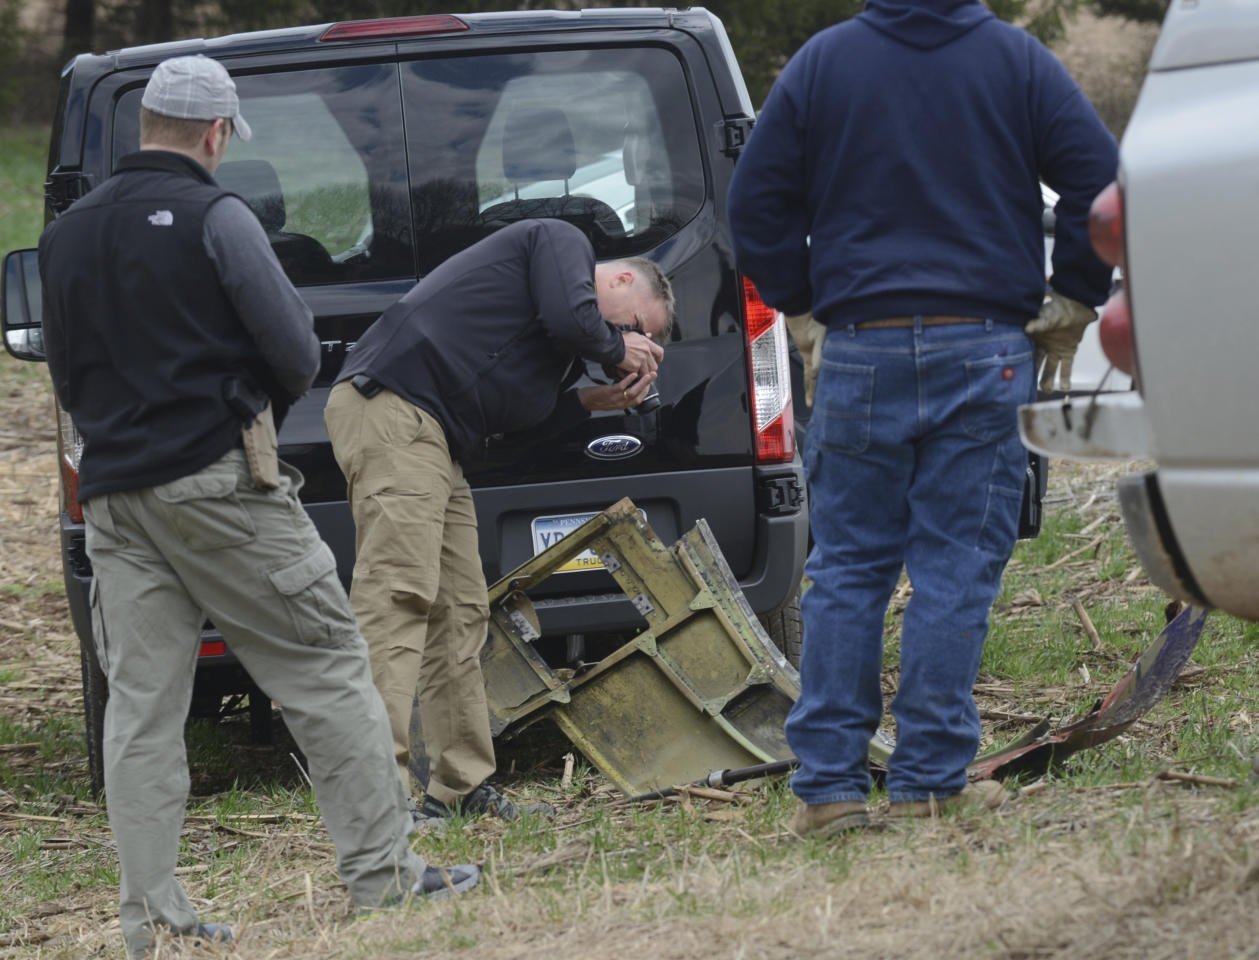 <p>A National Transportation Safety Board investigator photographs a piece of debris that landed in Penn Township, Berks County field from a plane that made an emergency landing Tuesday after a fatal engine mishap, Wednesday, April 18, 2018, on state game lands. (Photo: Bill Uhrich/Reading Eagle via AP) </p>